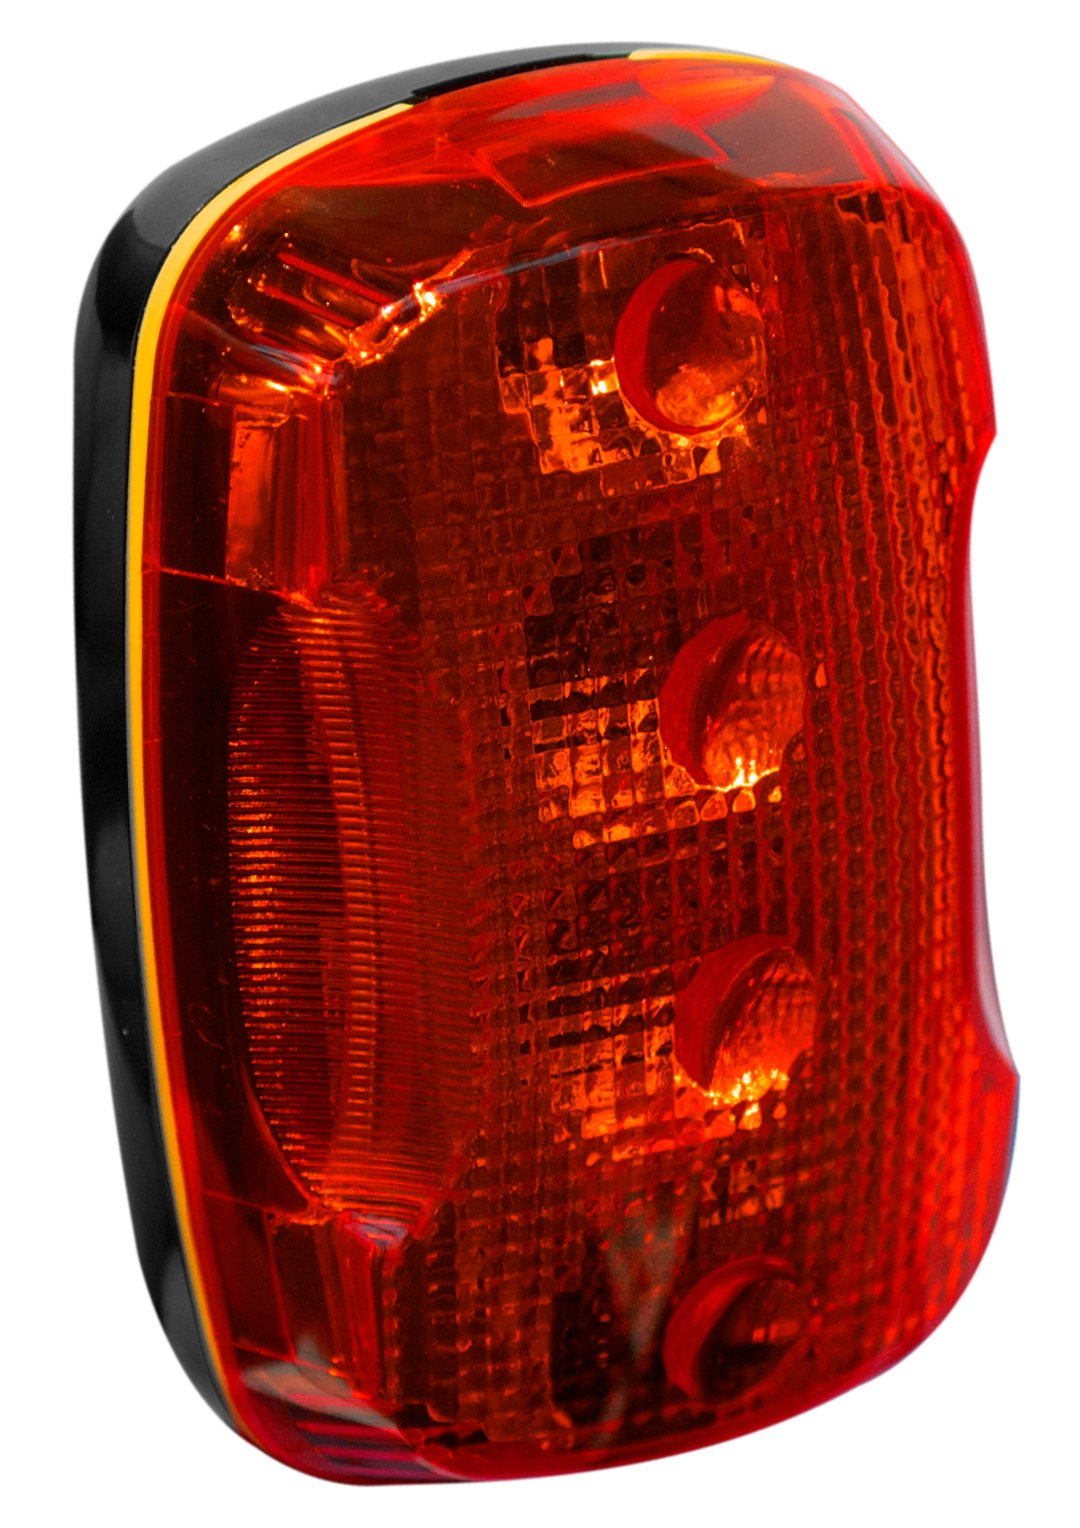 FoxFire 6001654 Personal Safety Weather Resistant Light, 4 LEDs, 2-115/128'' Length x 1-51/64'' Width x 1-5/32'' Thick, Red